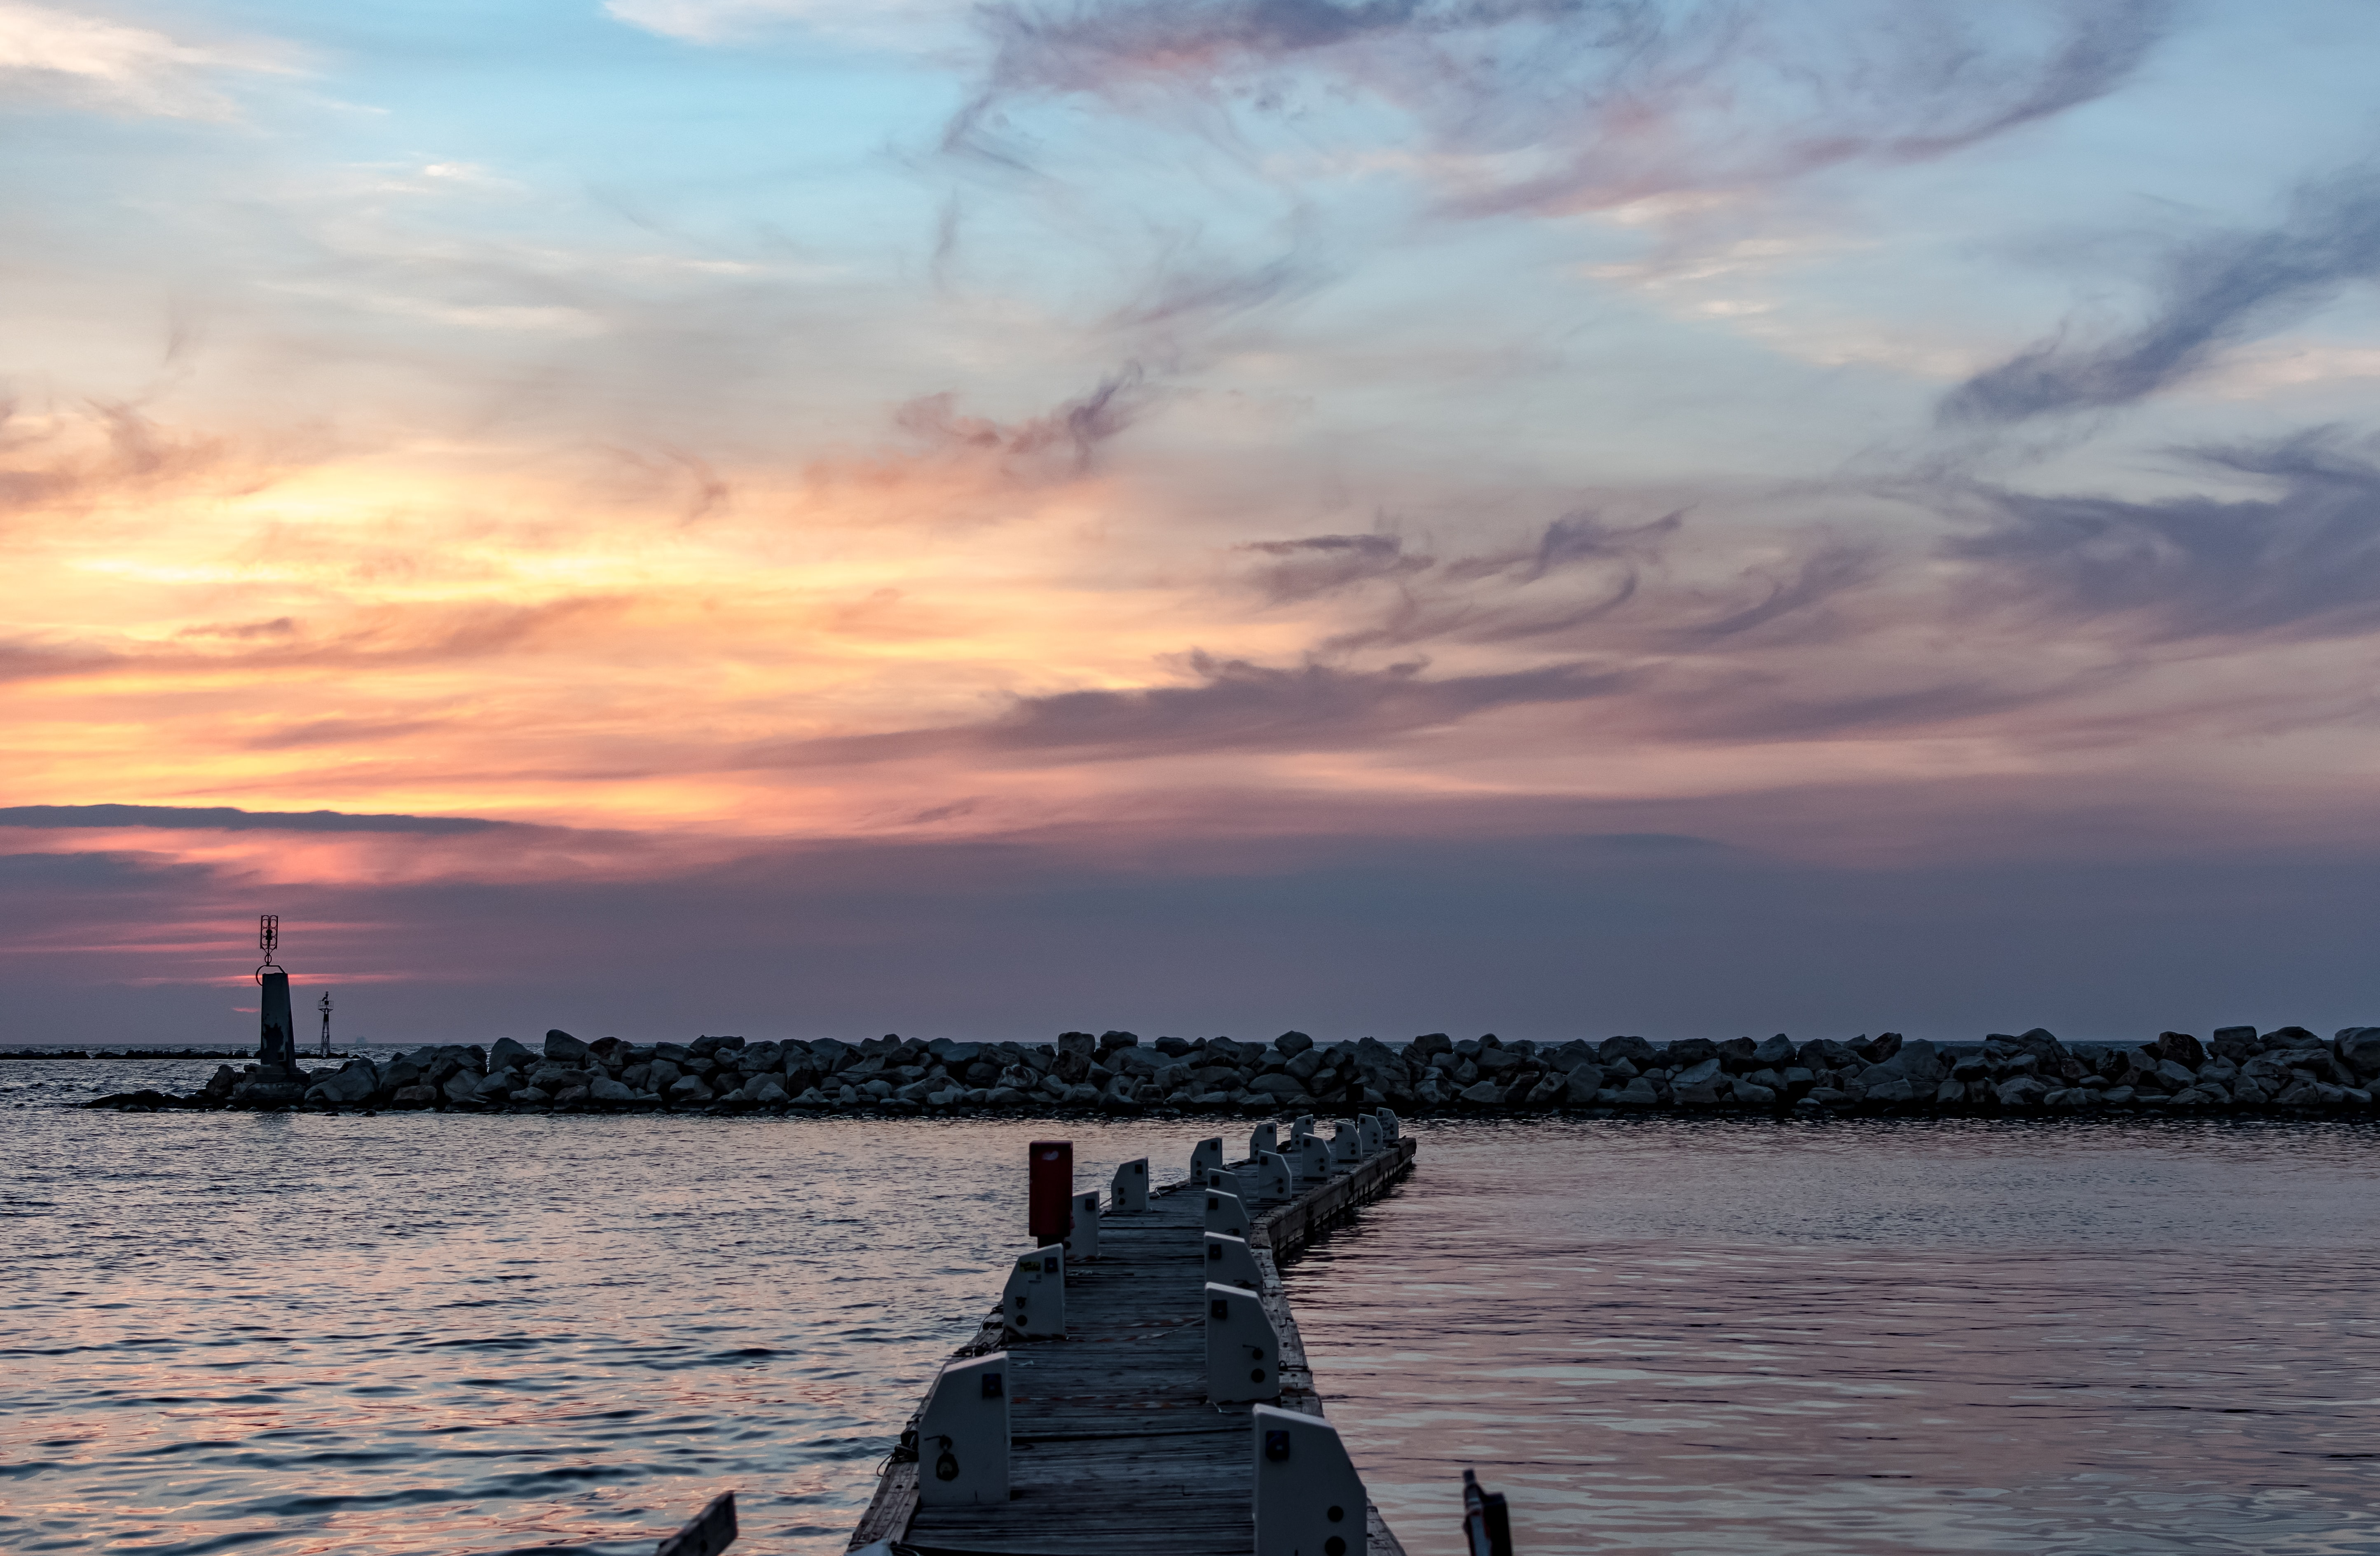 A jetty on the sea during sunrise or sunset in Patras